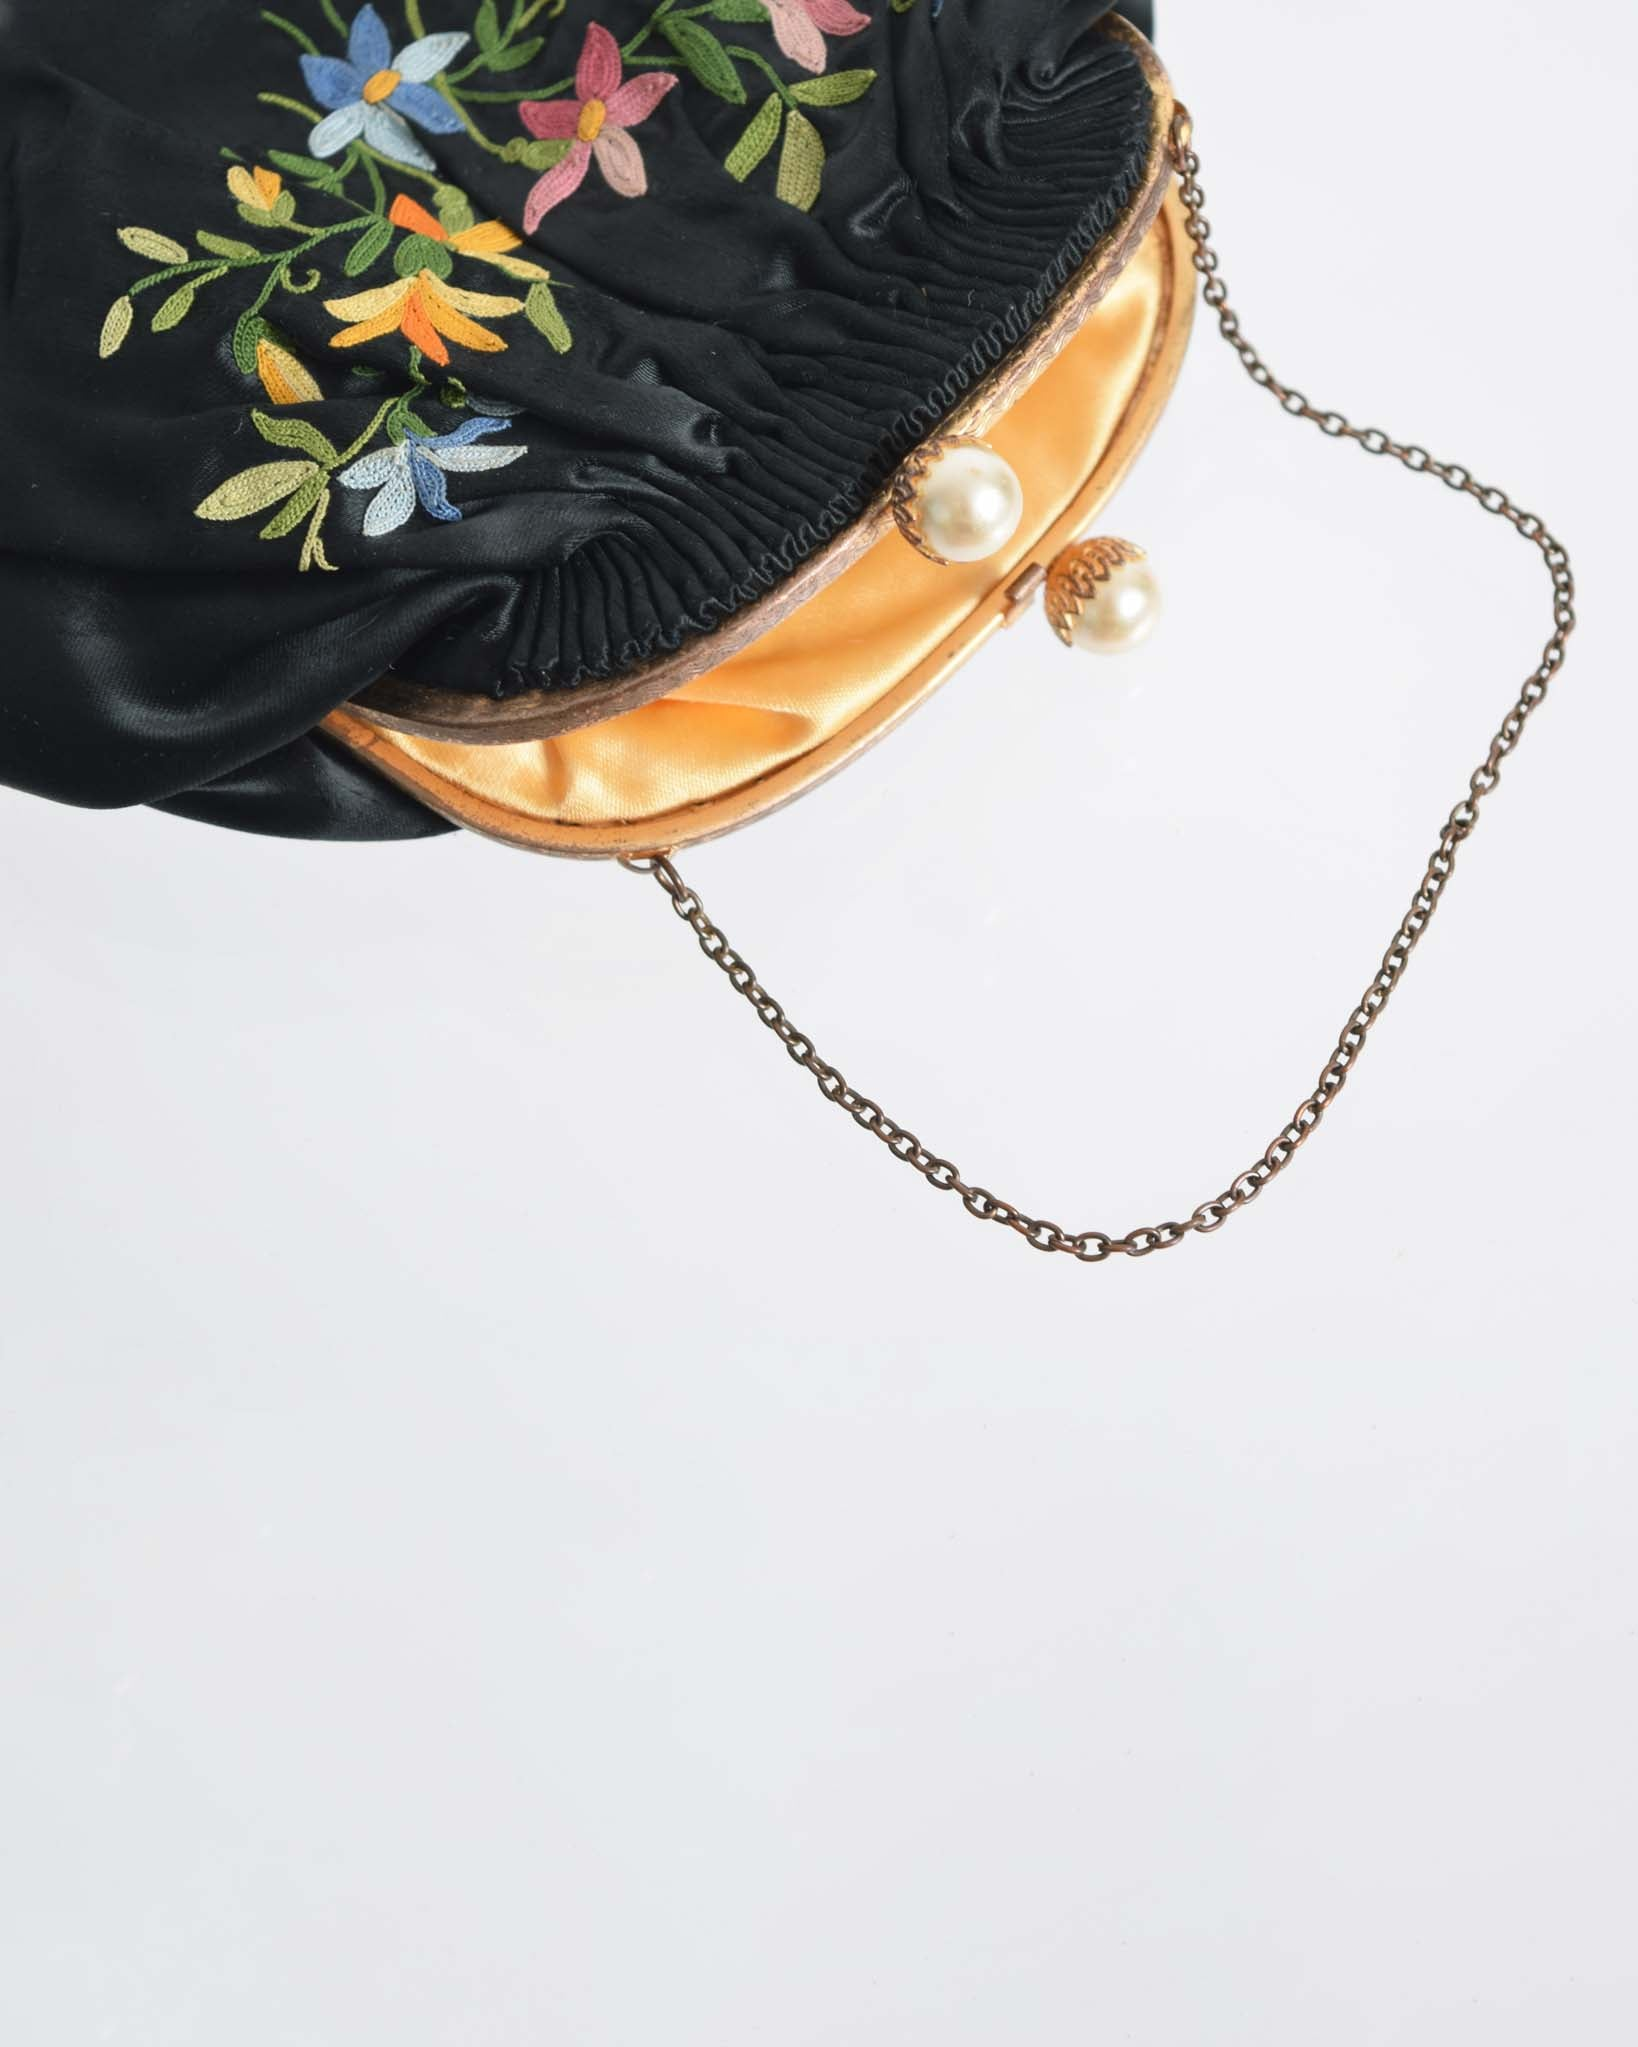 Vintage 1930s Crewel Evening Purse